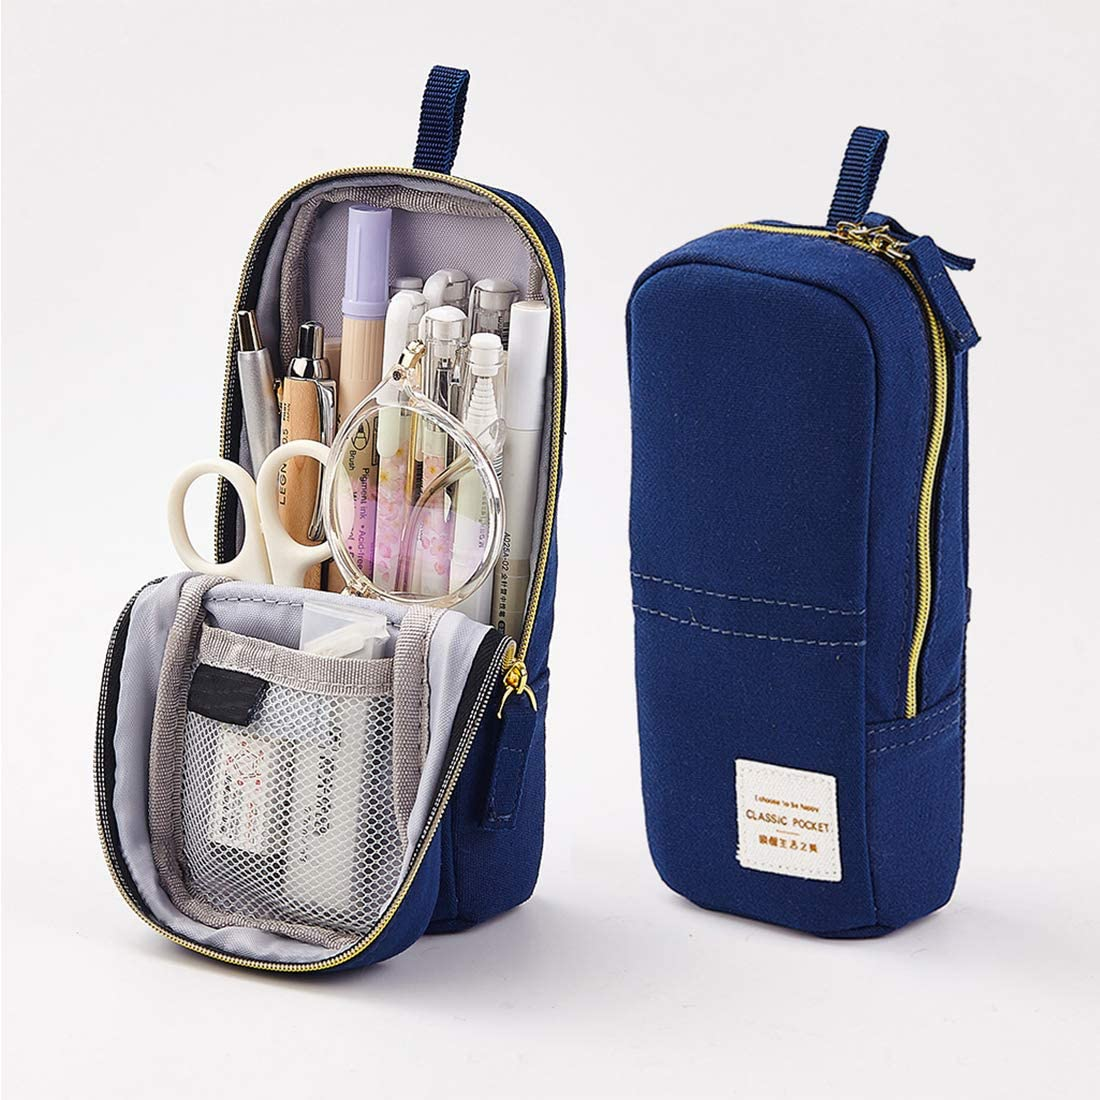 Oyachic Pencil Case Transform Stand Up Pen Phone Holder Zipper Pen Pouch Large Capacity Stationery Box Canvas Cosmetic Bag Office School Supplies (Dark Blue)